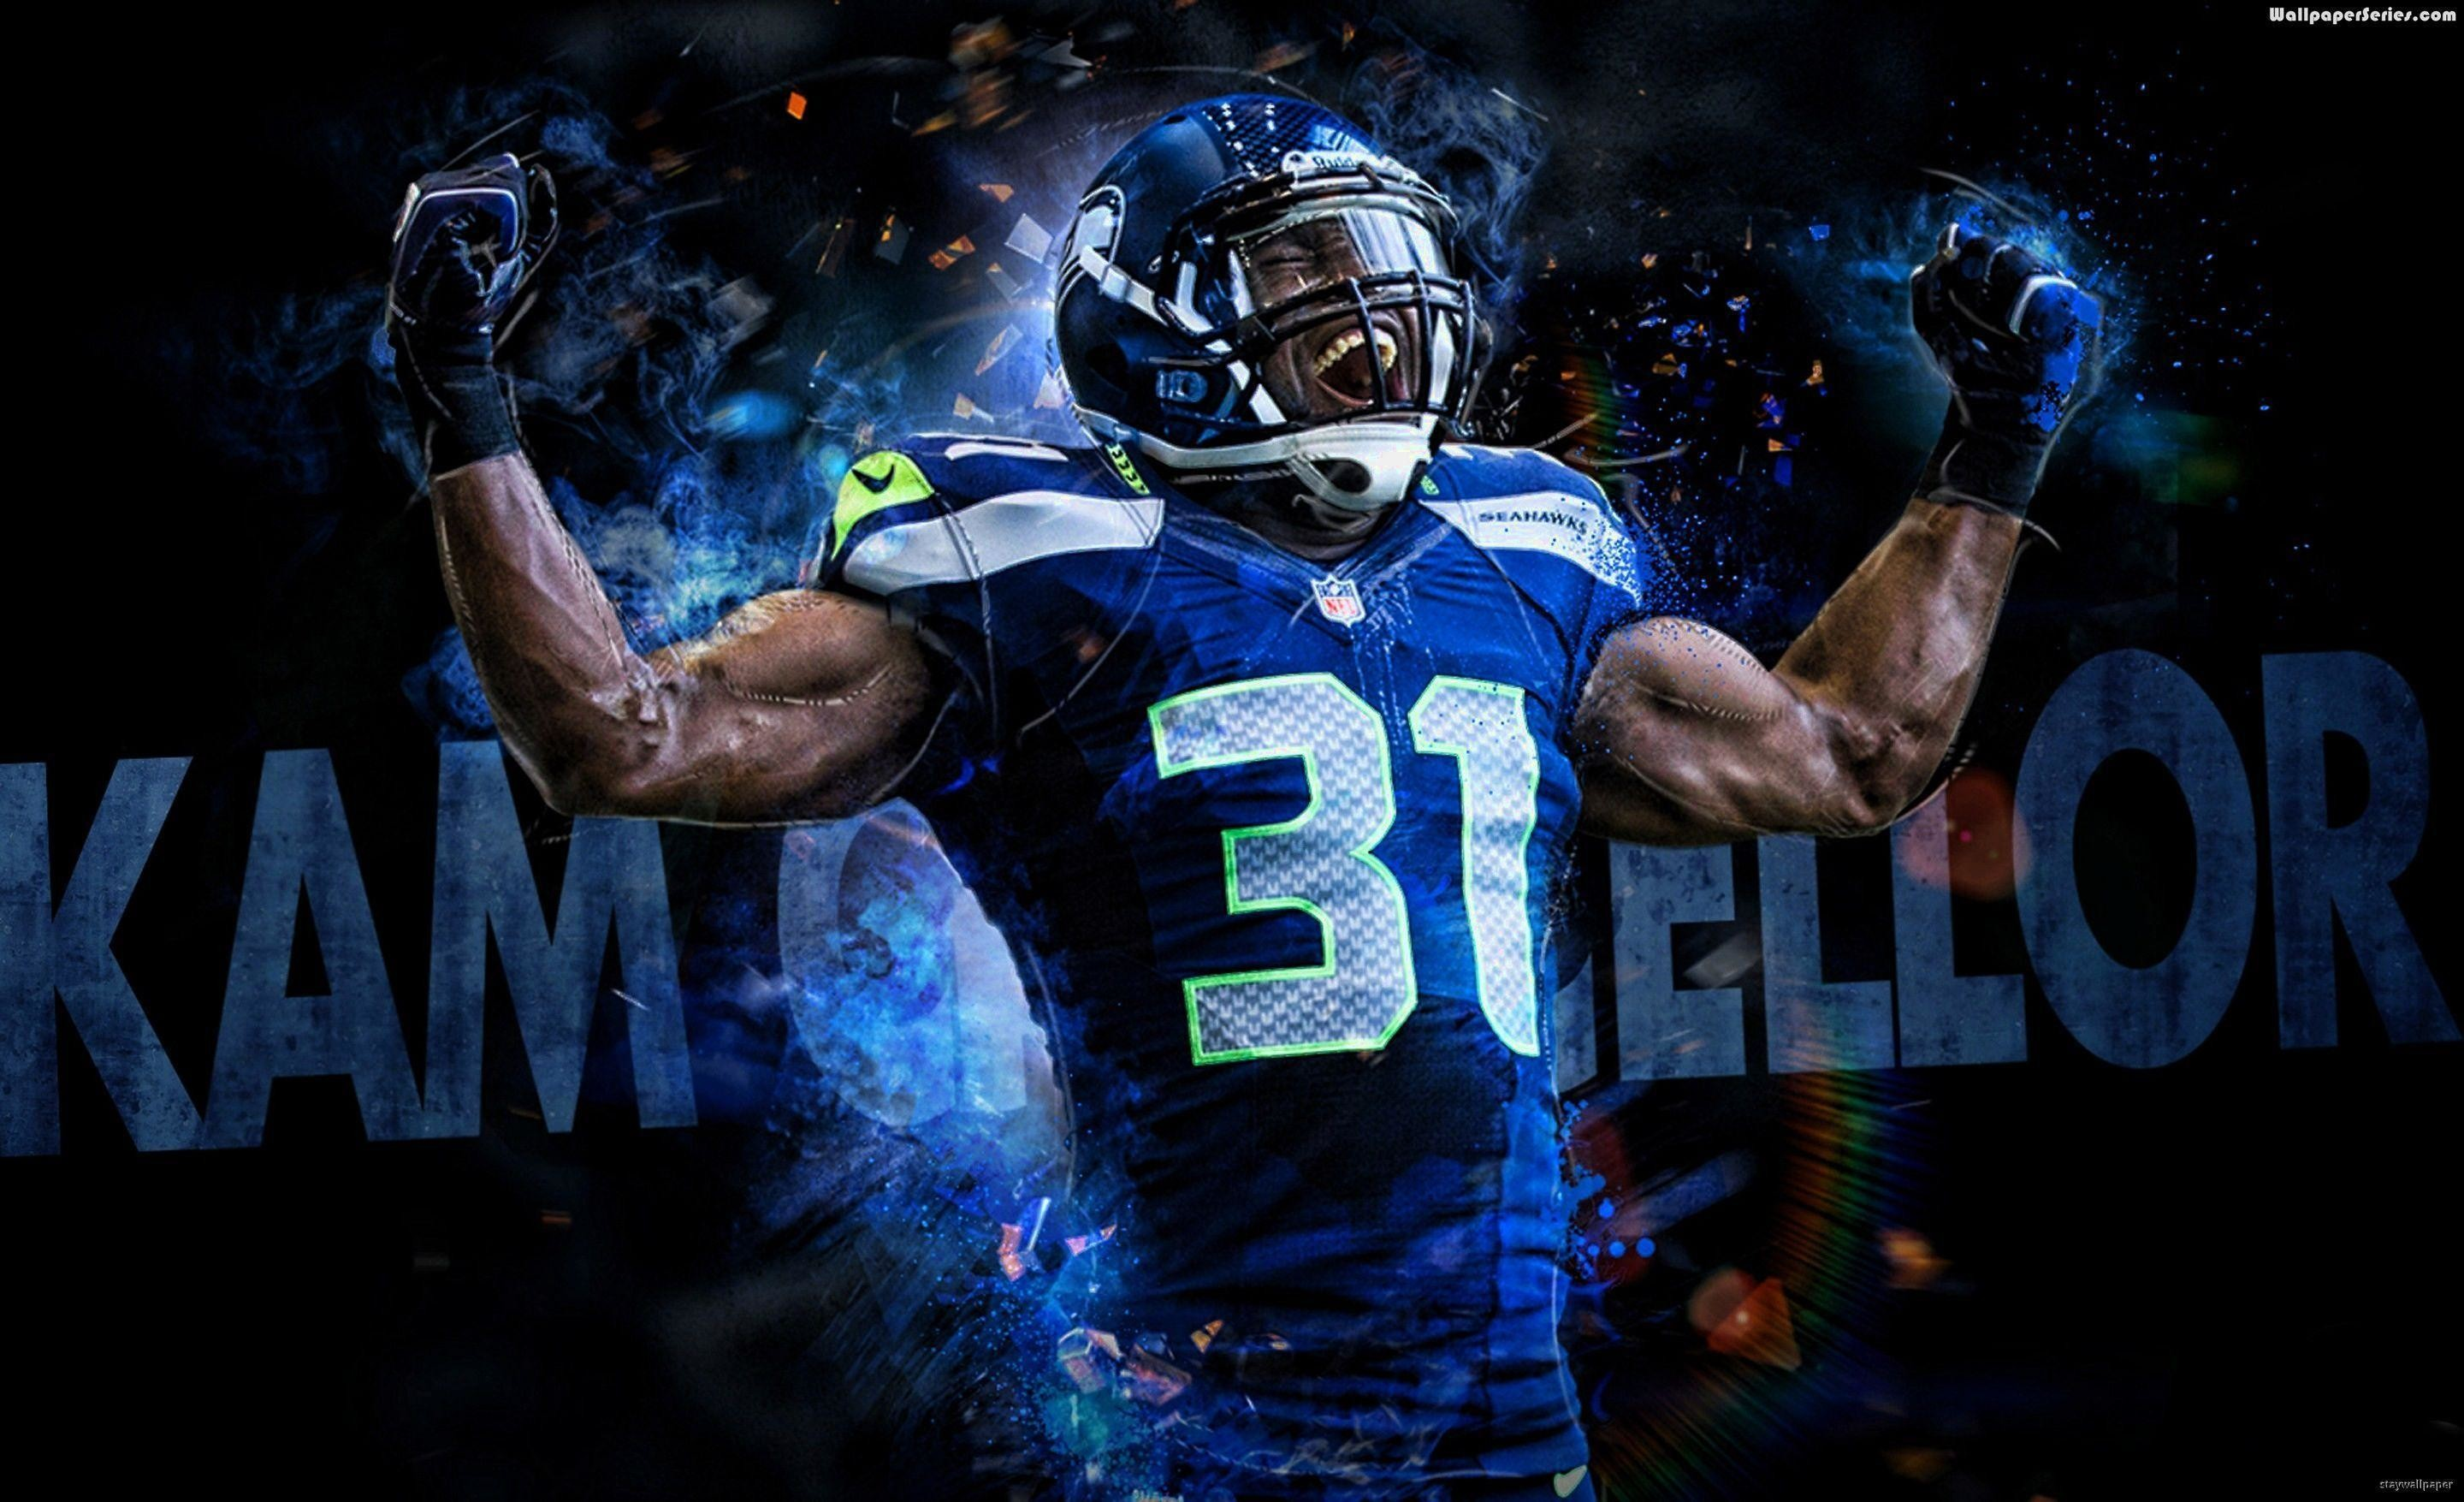 Amazing Soccer Wallpaper For Android: American Football Player Wallpaper (73+ Images